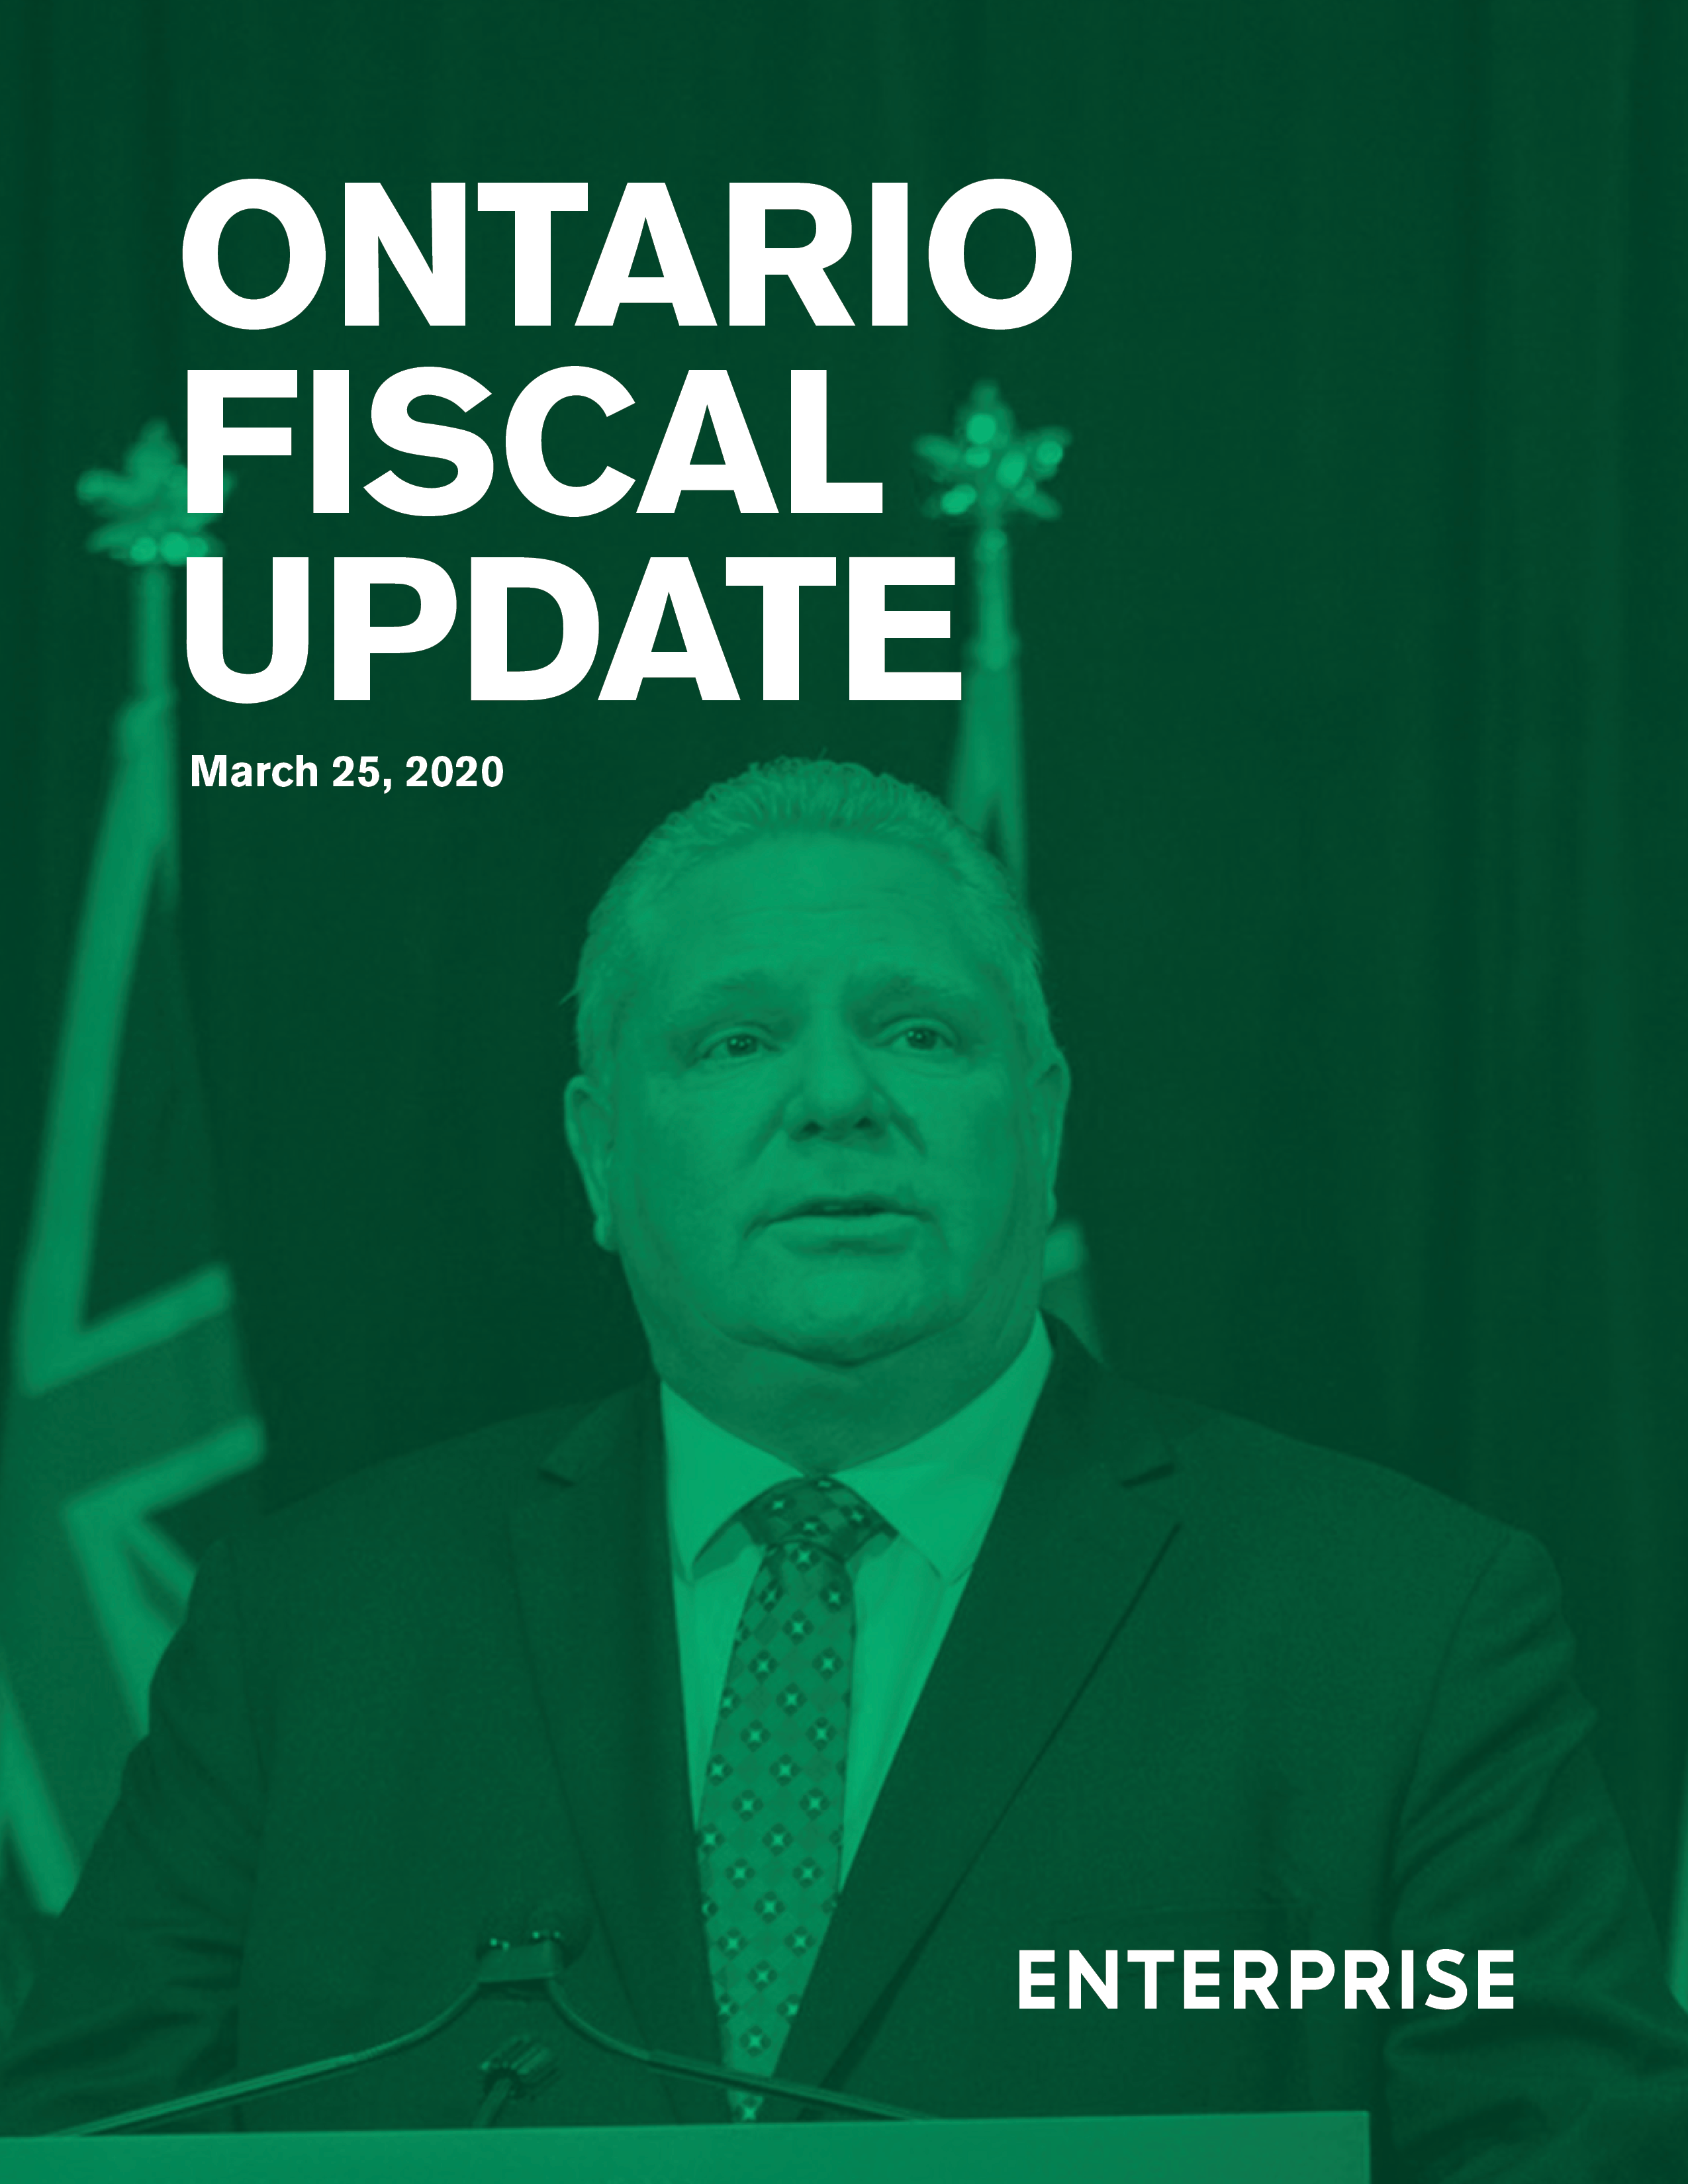 Ontario Fiscal Update 2020